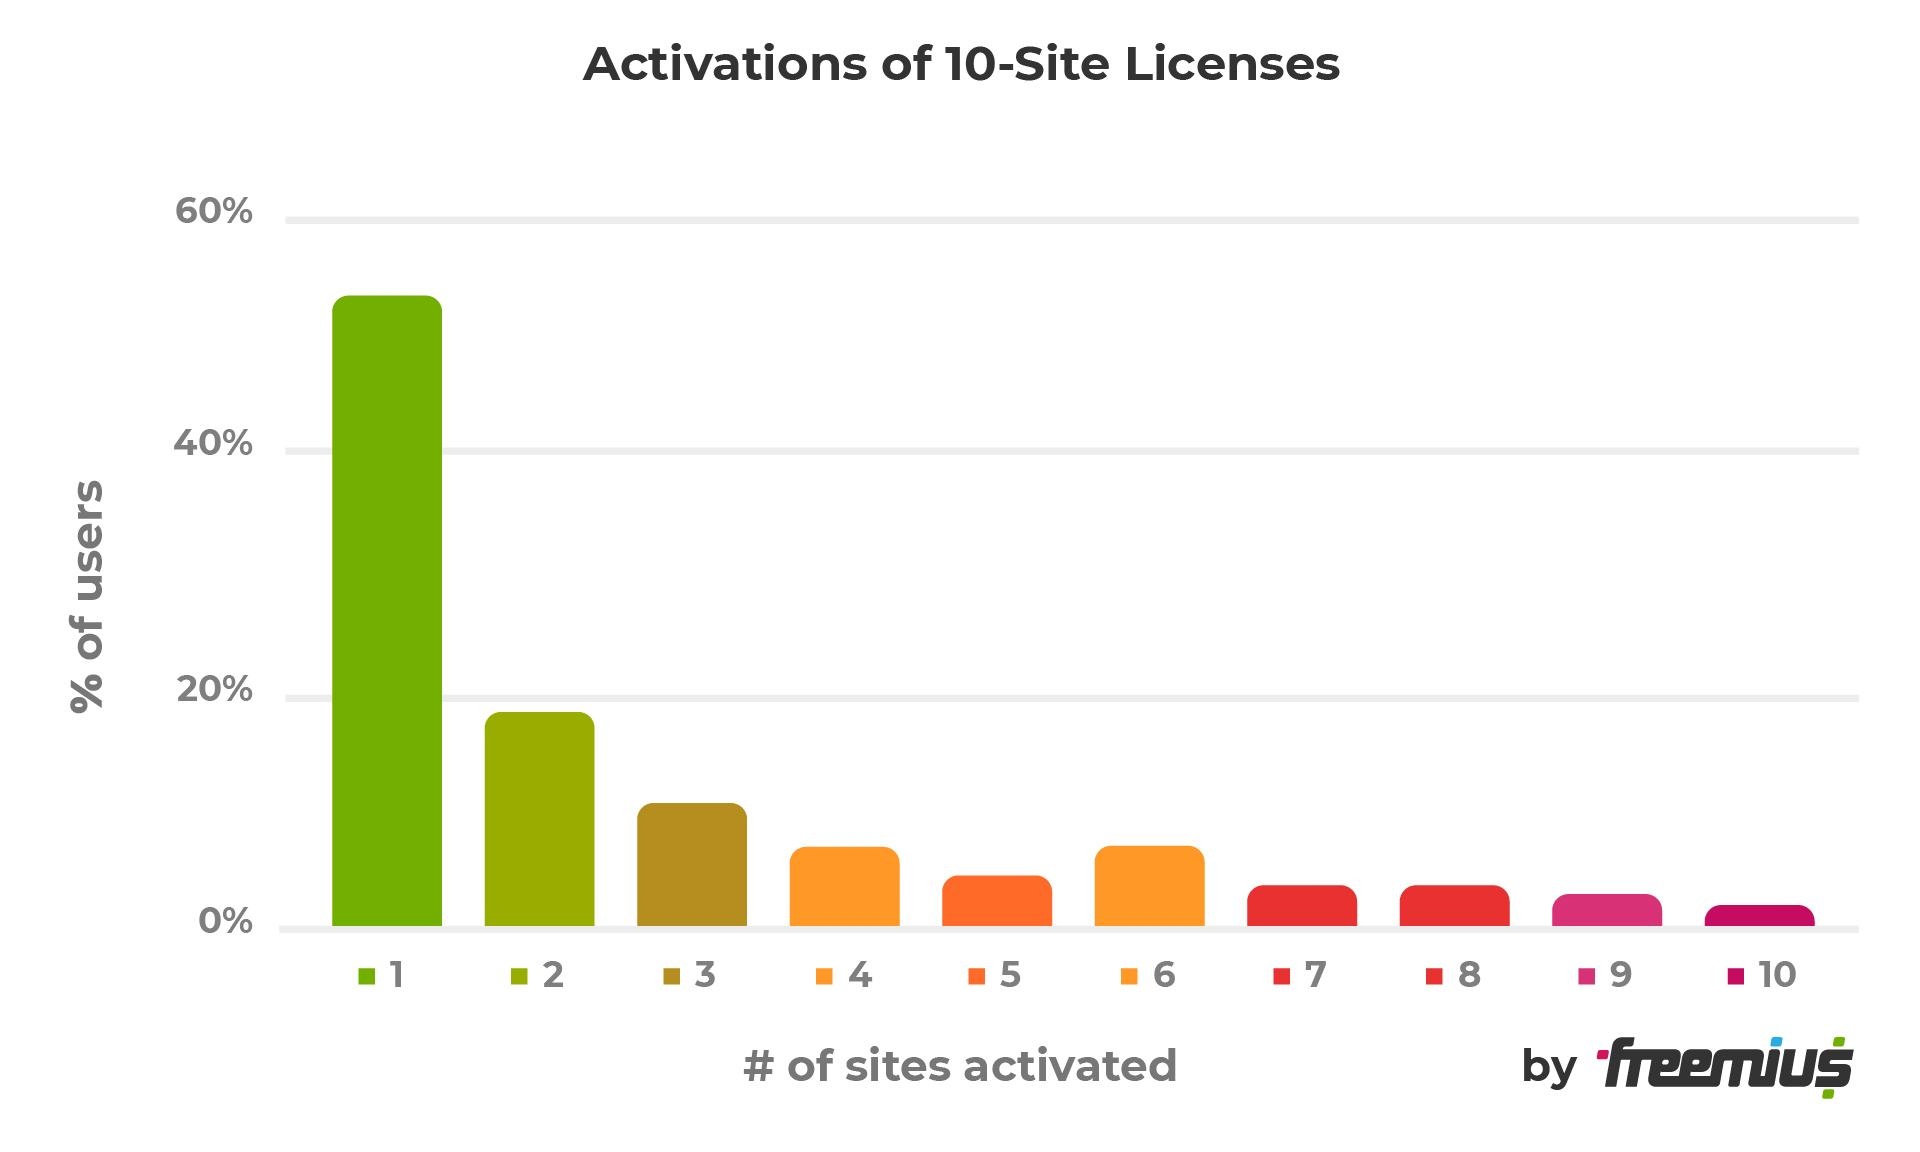 Activations of 10-site licenses